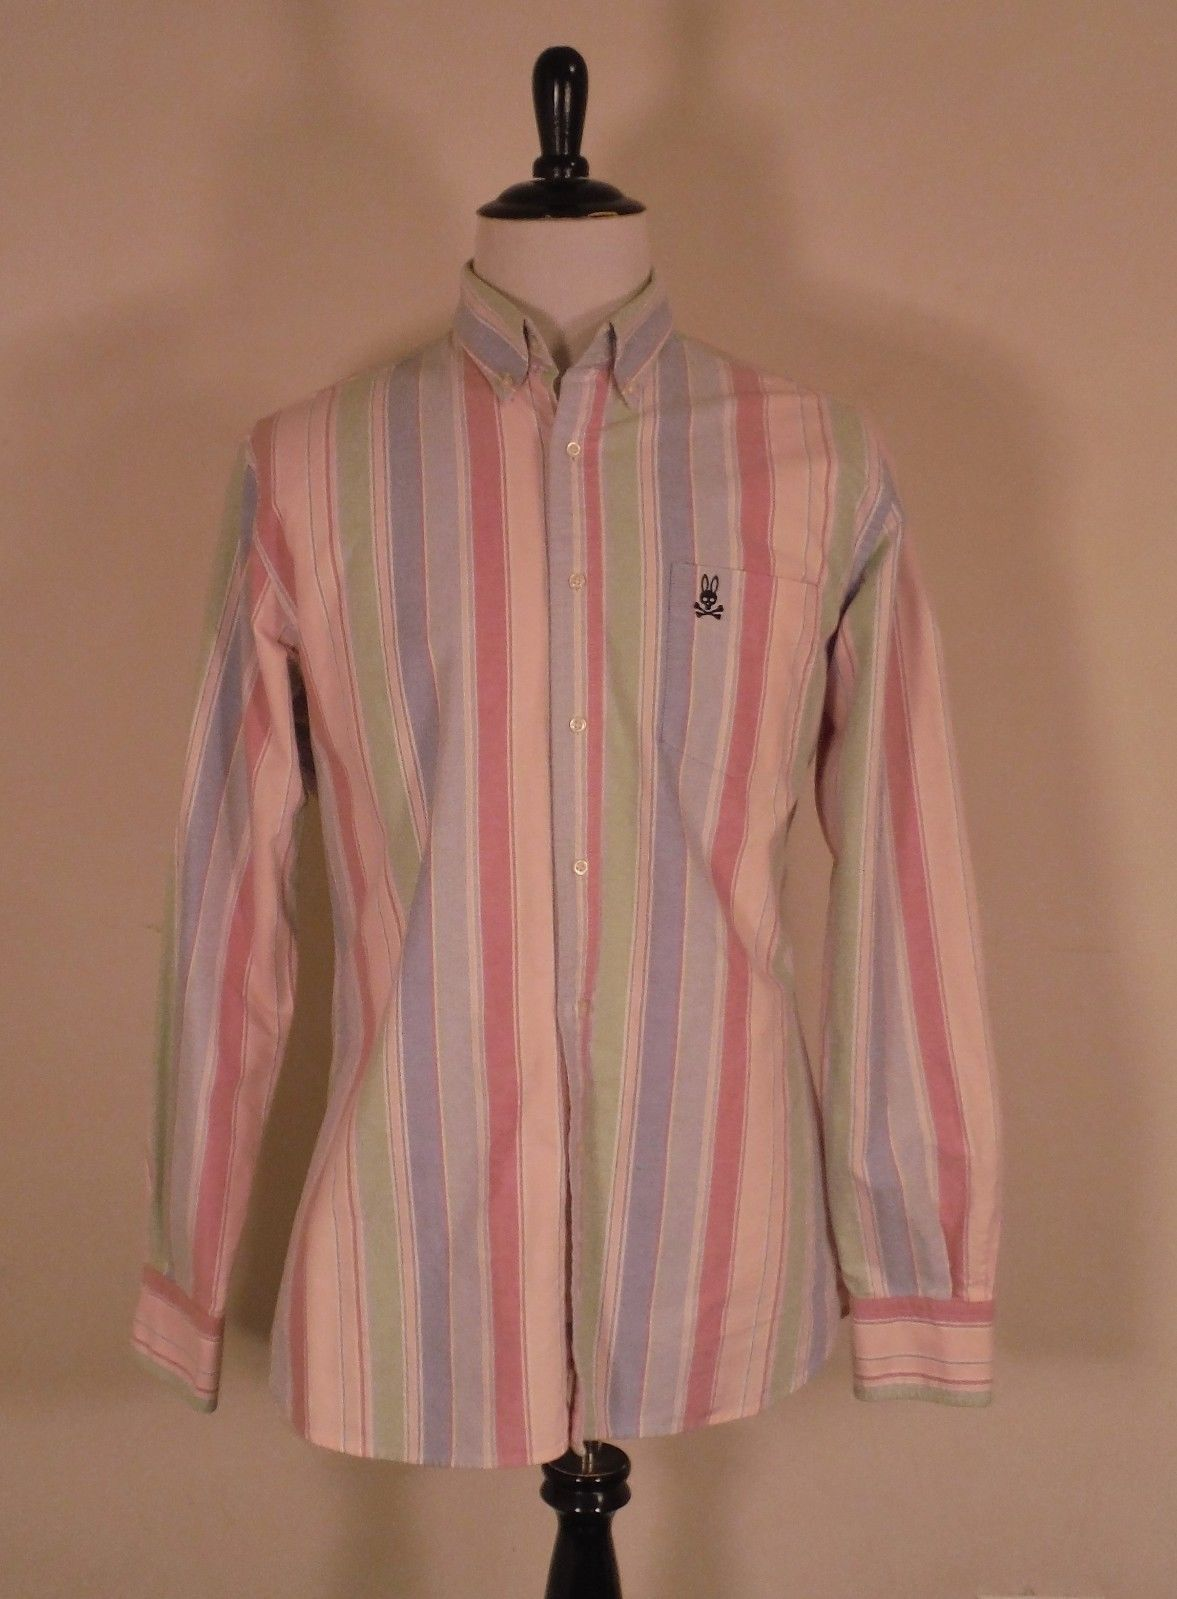 bd00ffe5 S l1600. S l1600. Previous. Men's Psycho Bunny Pinks blues greens Striped  Button Shirt Size Large ...